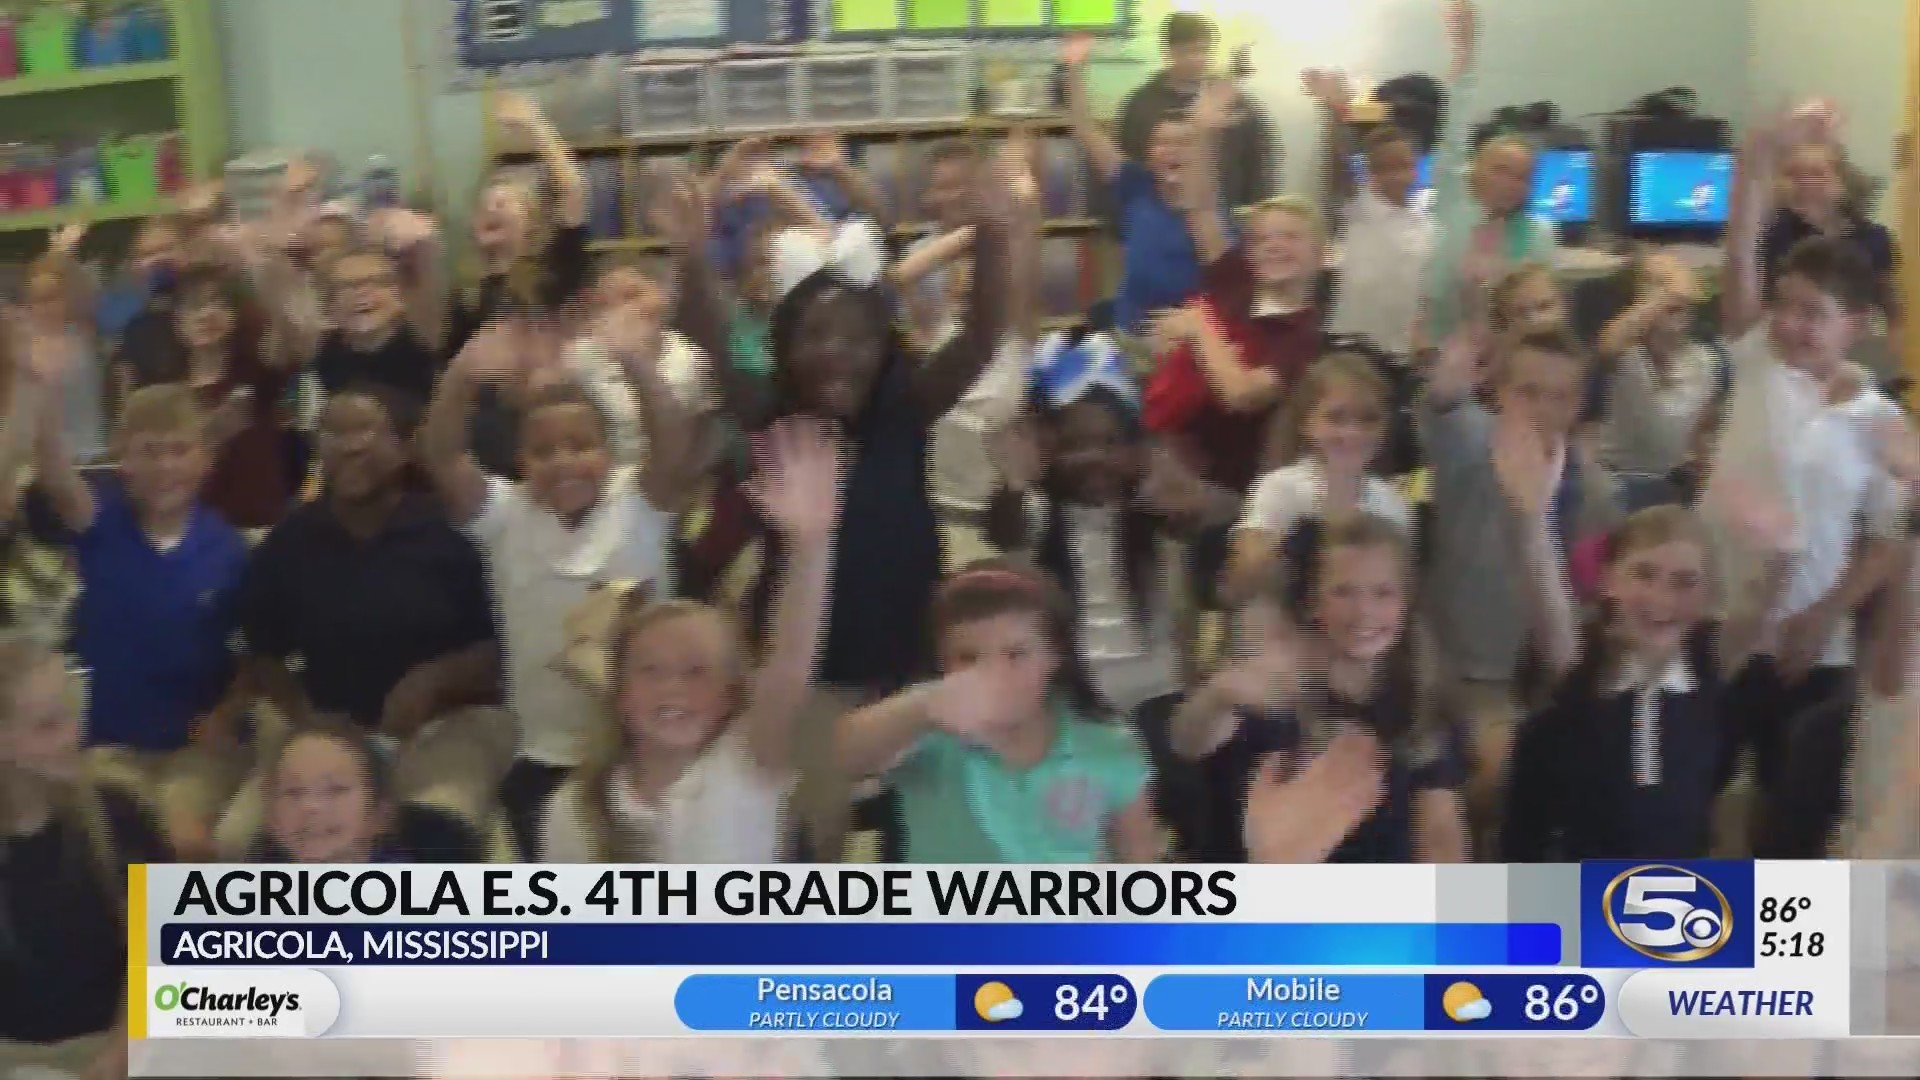 Agricola Elementary Fourth Grade with Alan Sealls